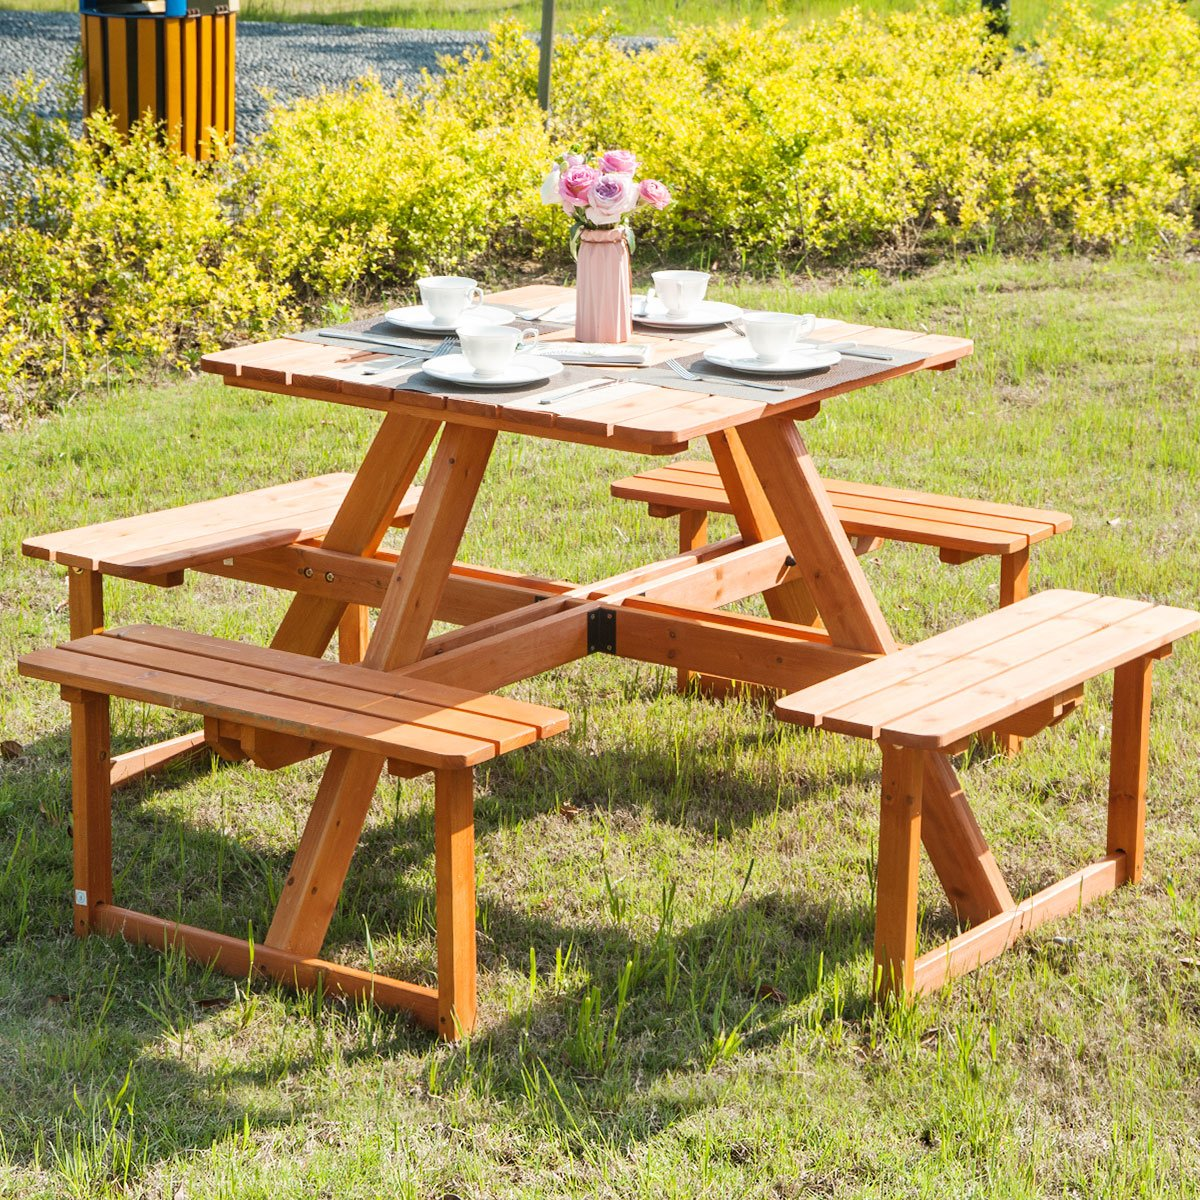 Amazoncom Merax Pine Wood Round Picnic Table And Benches Natural - How to stain a picnic table